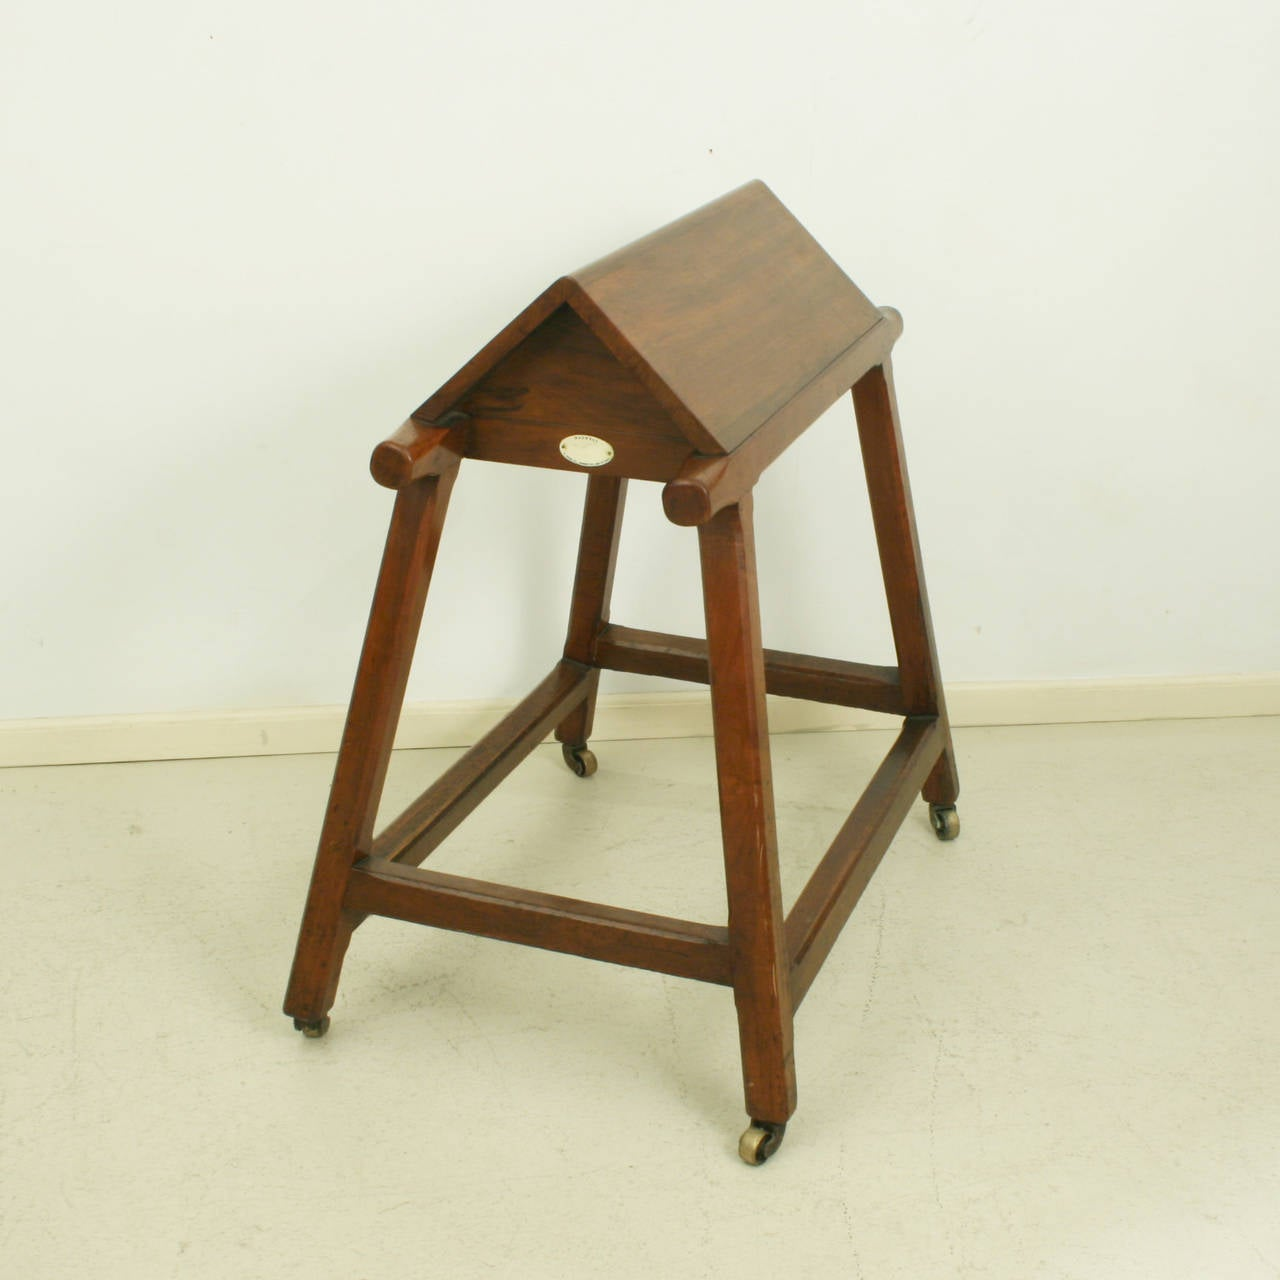 Saddle Rack Wooden Horse For Sale At 1stdibs. Full resolution  portrait, nominally Width 1280 Height 1280 pixels, portrait with #643F1D.